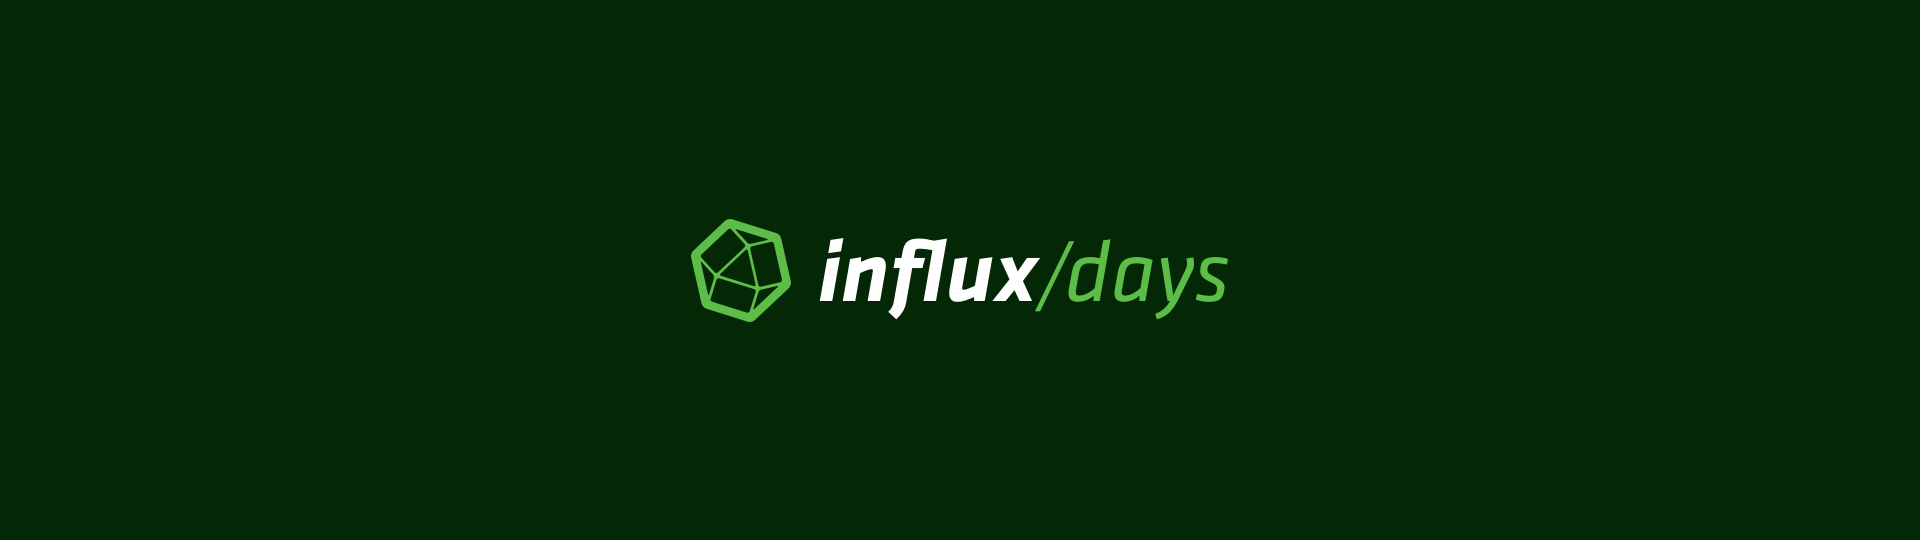 Configured Things invited to speak at InfluxDays EMEA 2021 Virtual Conference